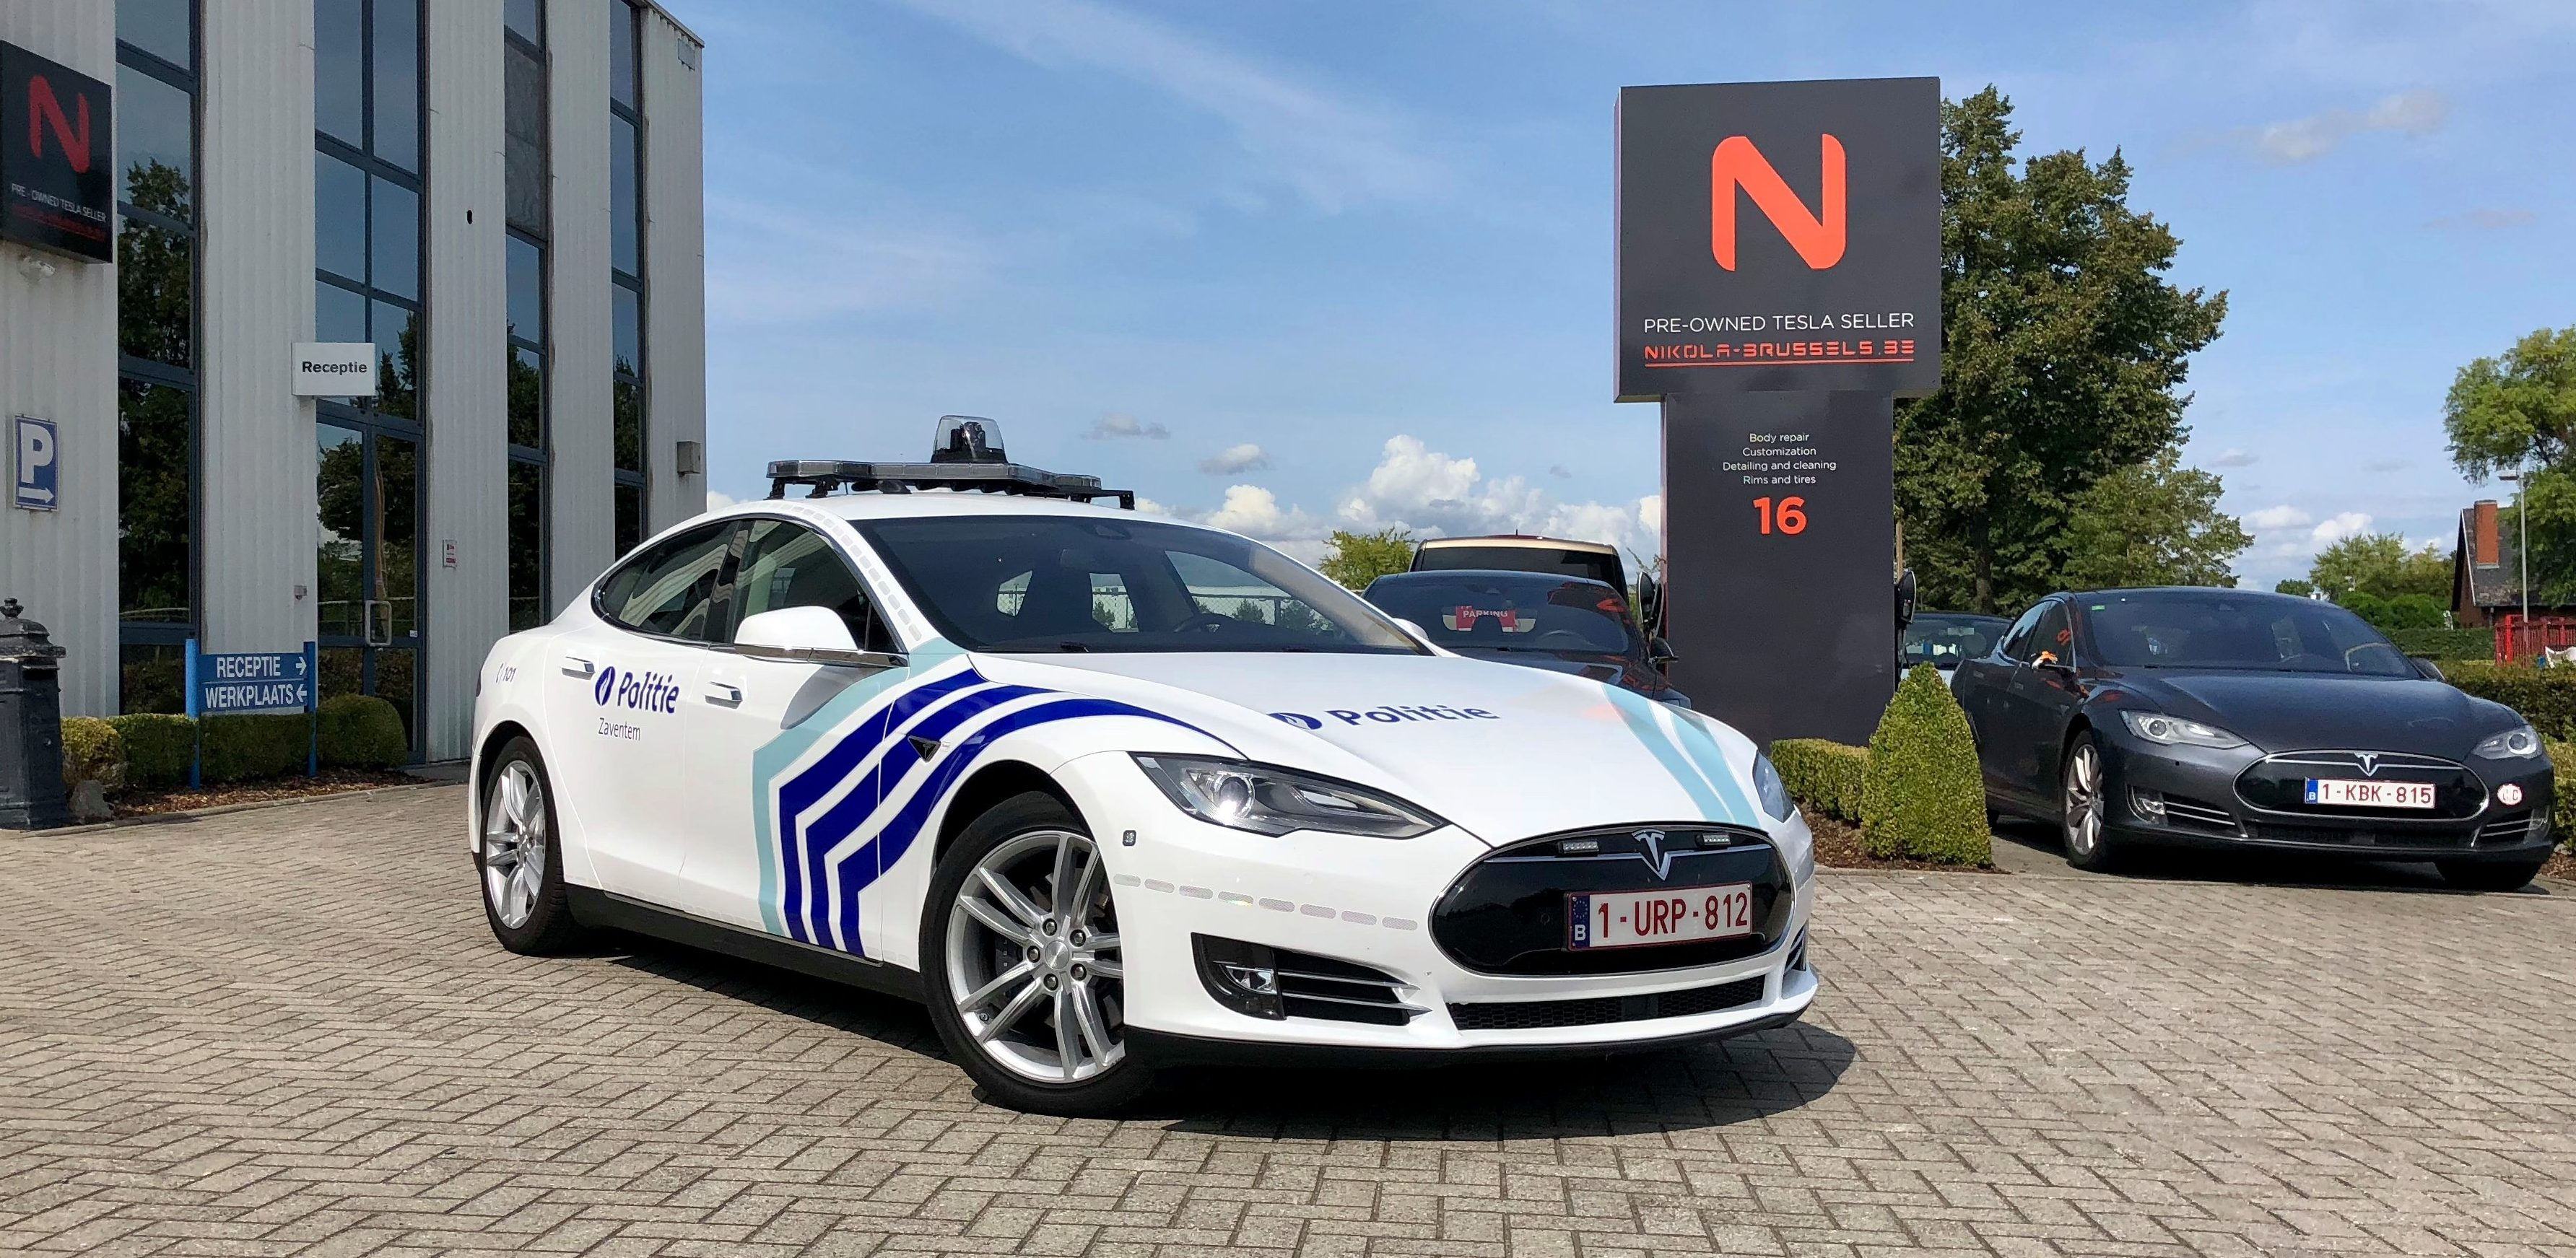 Ontario Quality Motors >> Tesla vehicles are now being deployed by Belgium police - Electrek